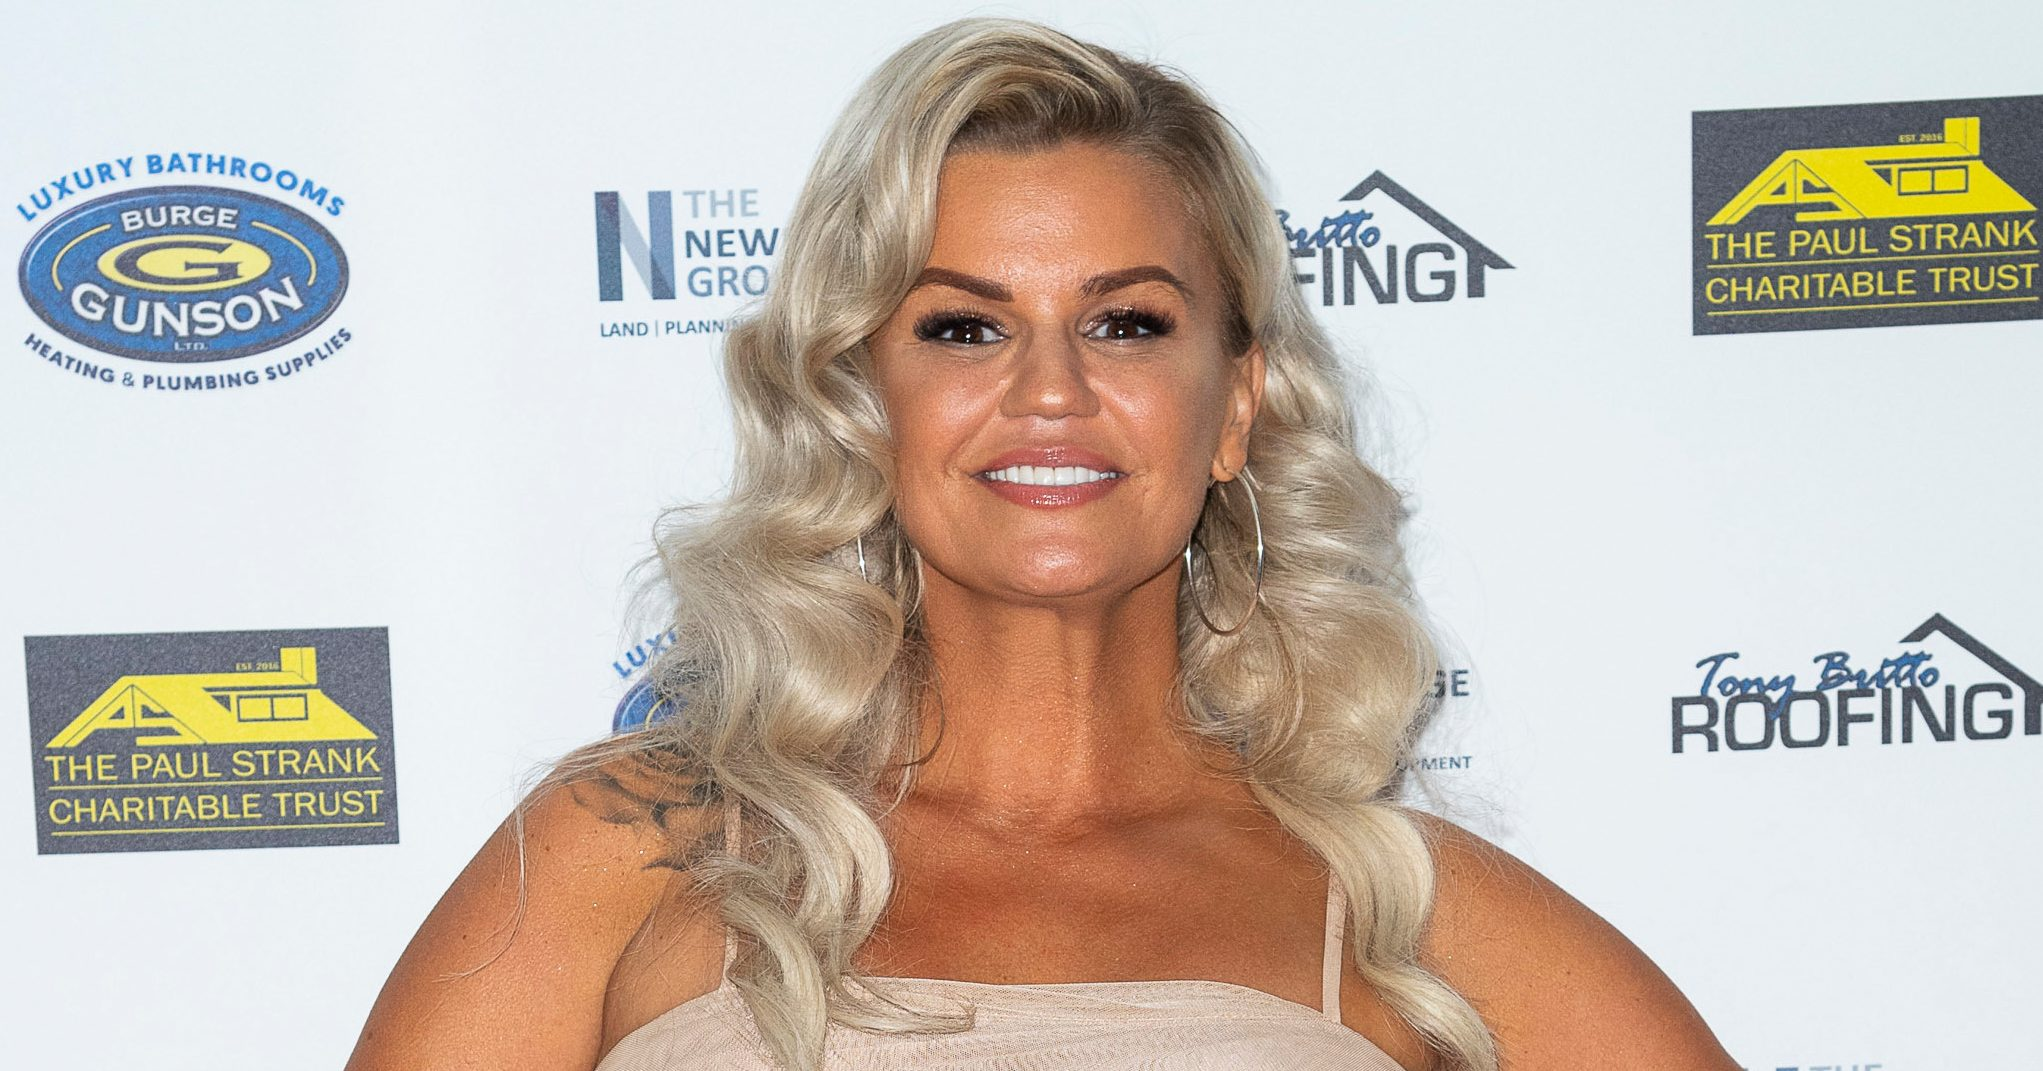 Kerry Katona shows off her sensational toned bod